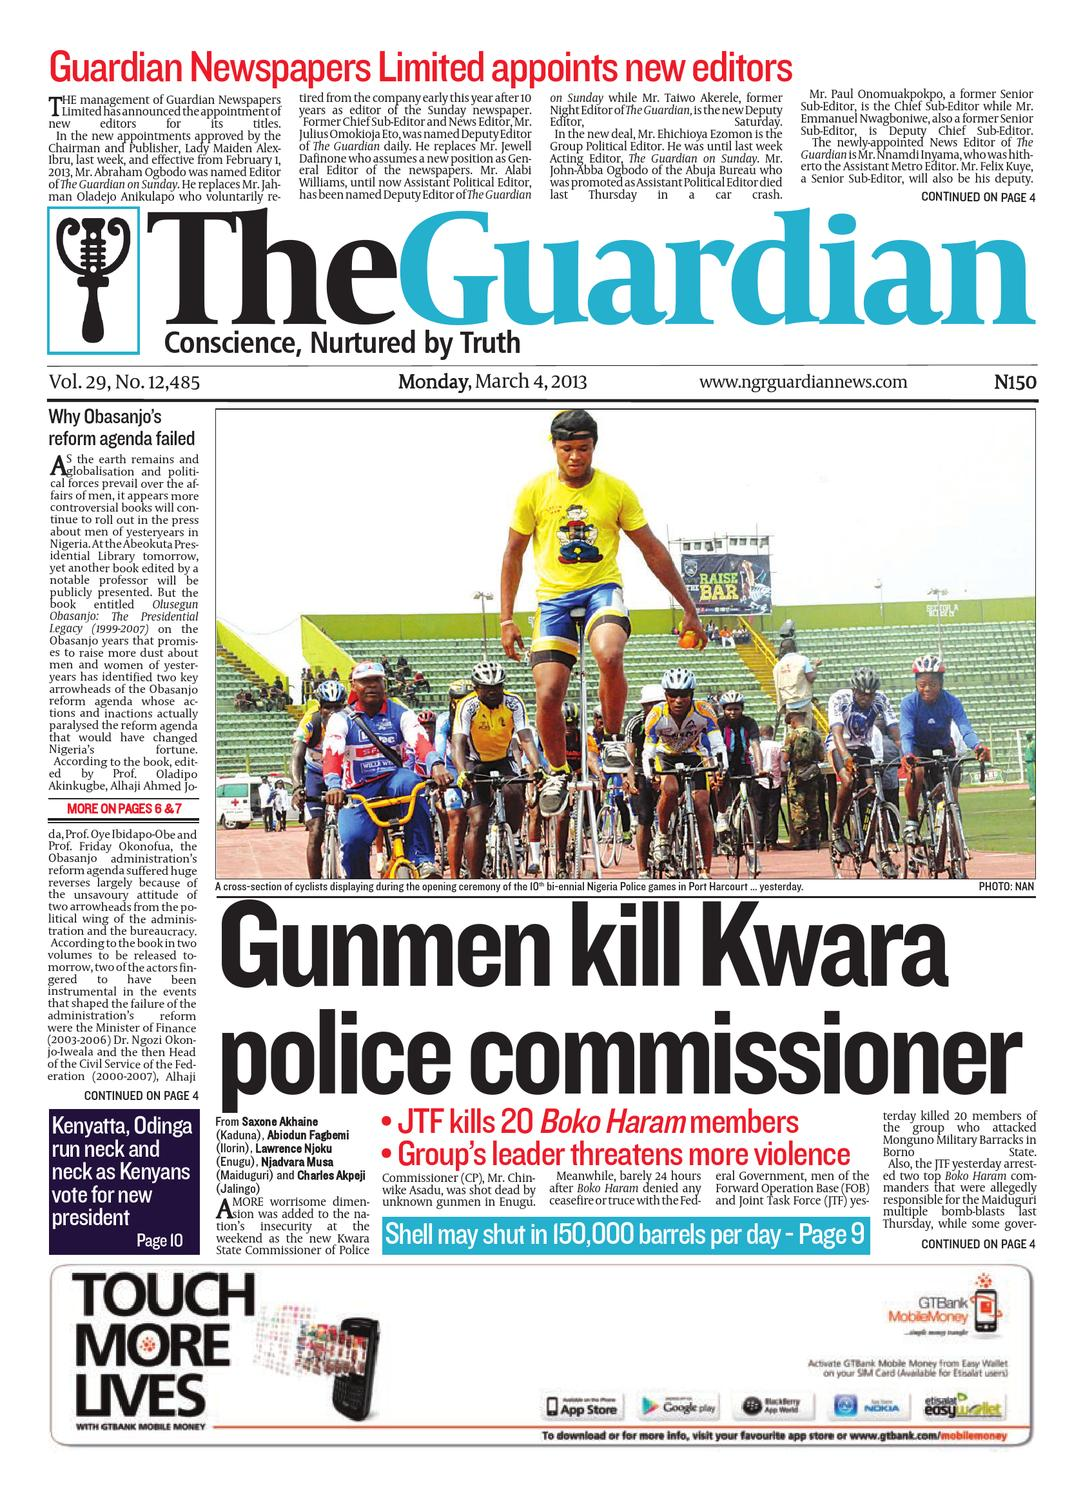 Monday 04 Mar 2013 The Guardian Nigeria by The Guardian Newspaper - issuu ed1cce5a35903